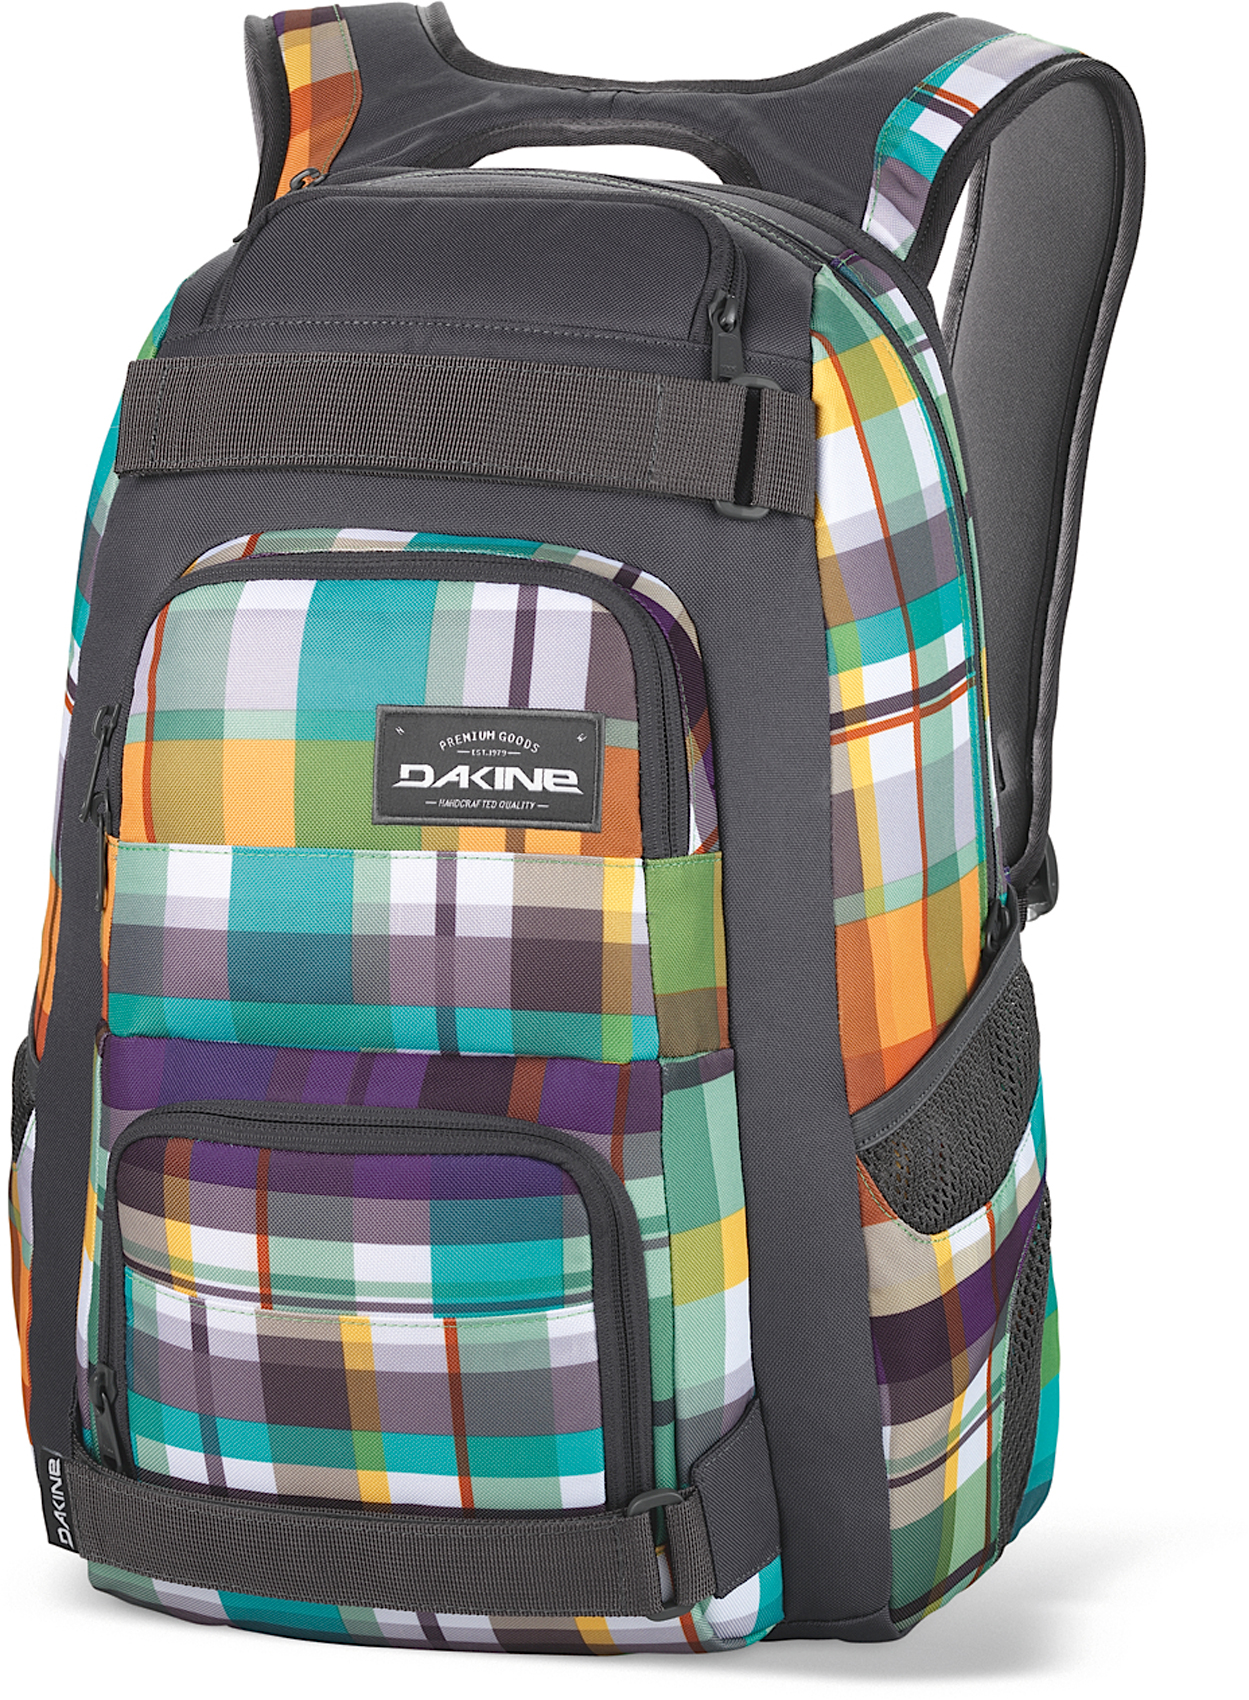 7e9c234589ec7 Skate Backpacks Dakine- Fenix Toulouse Handball